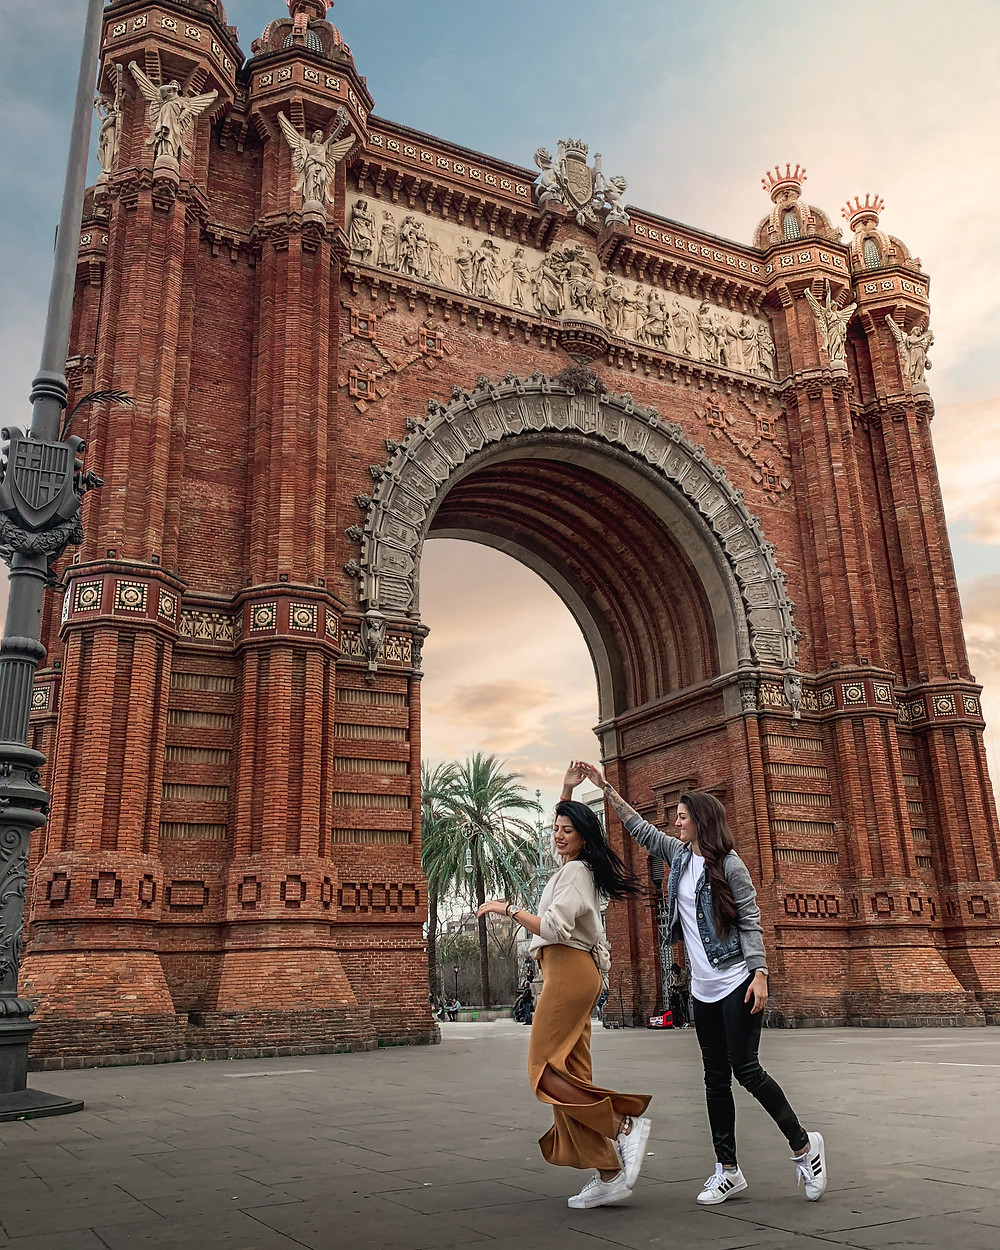 Arc de Triomf in Barcelona, Spain | On Airplane Mode